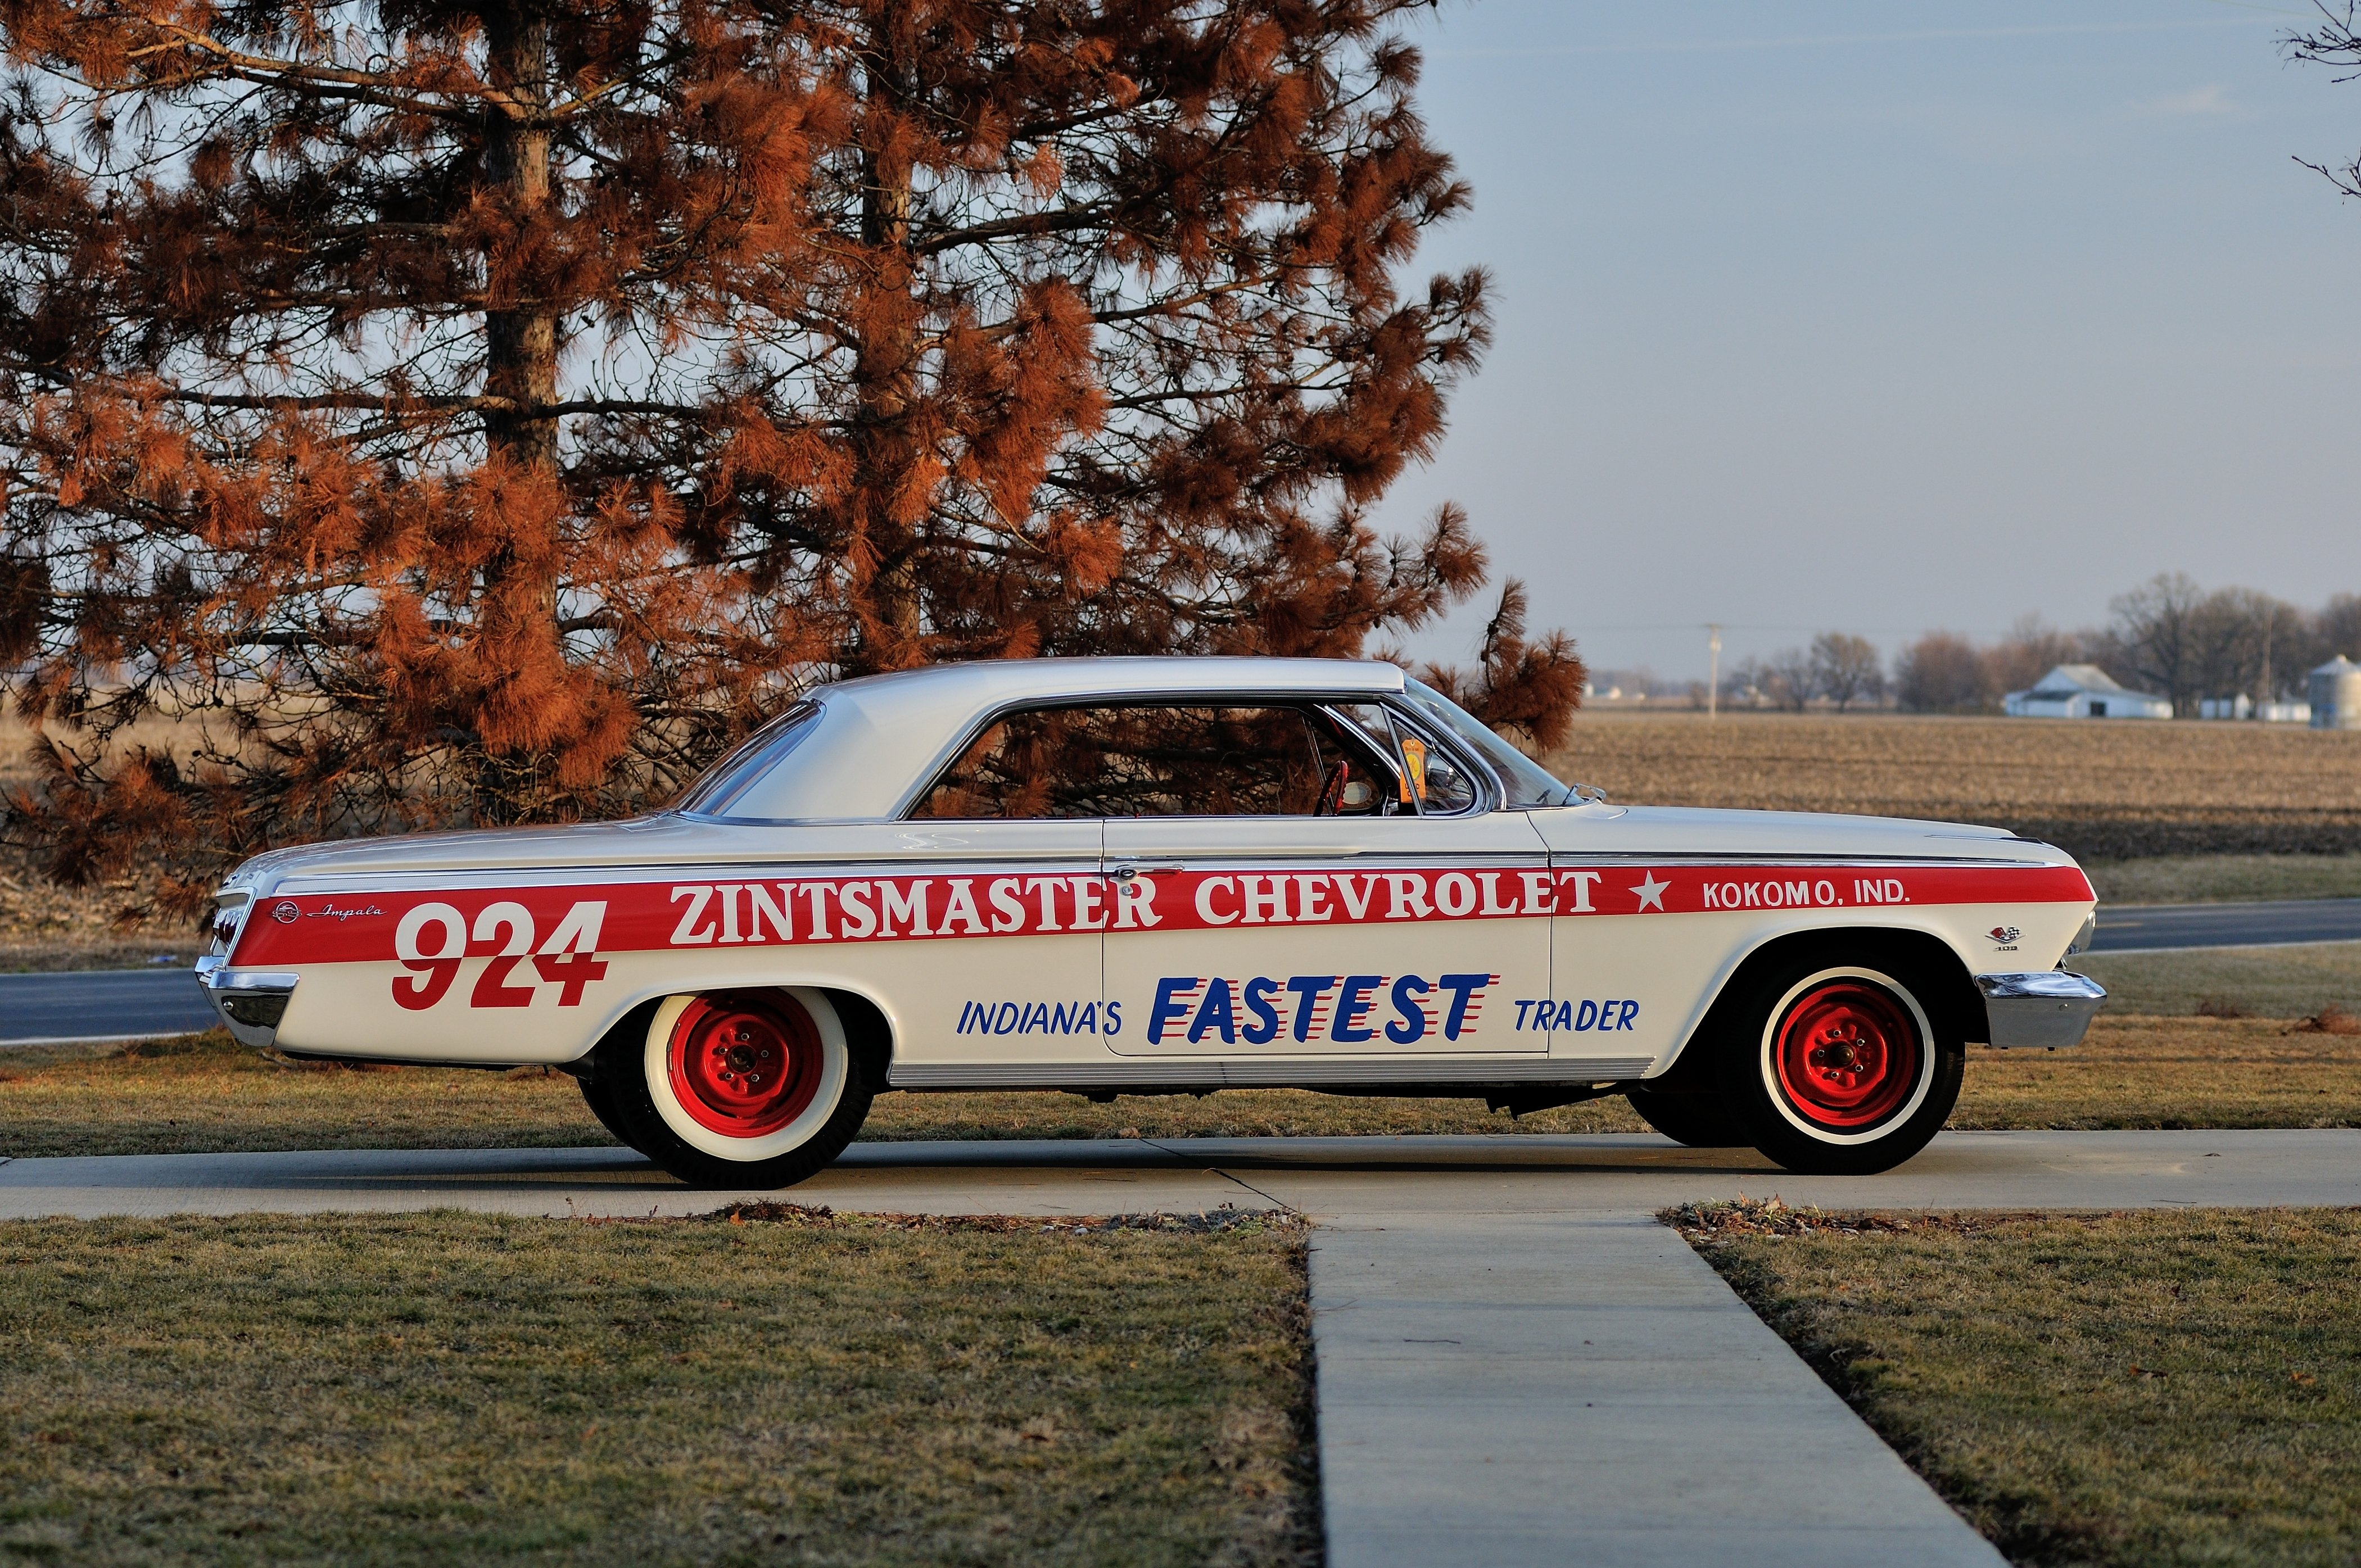 1962 Chevrolet Impala Lightweight NASCAR Race Car Racecar Muscle USA ...